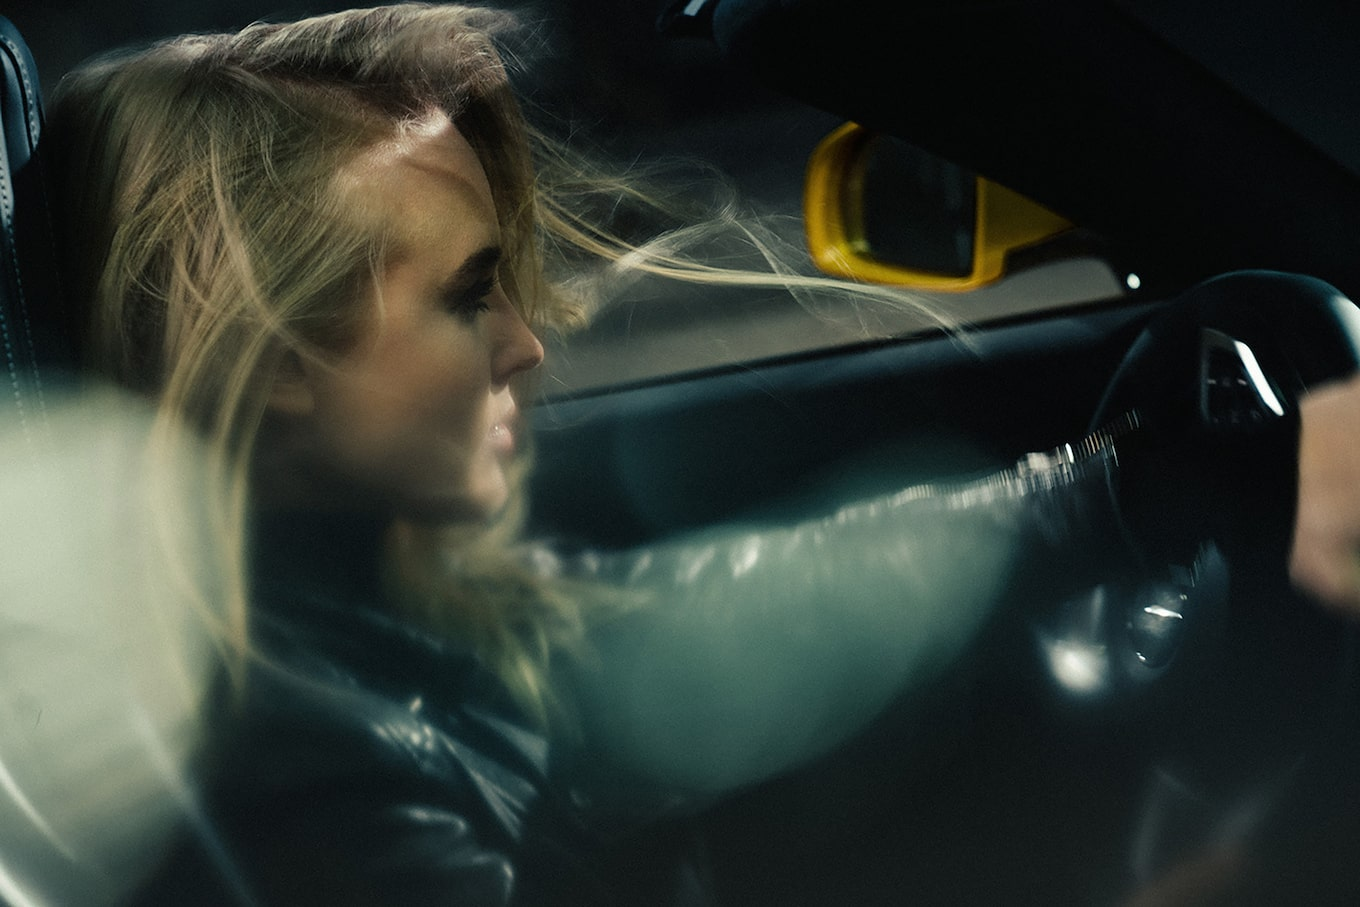 frederic-schlosser-sony-alpha-7RIII-close-up-of-girl-driving-a-sports-car